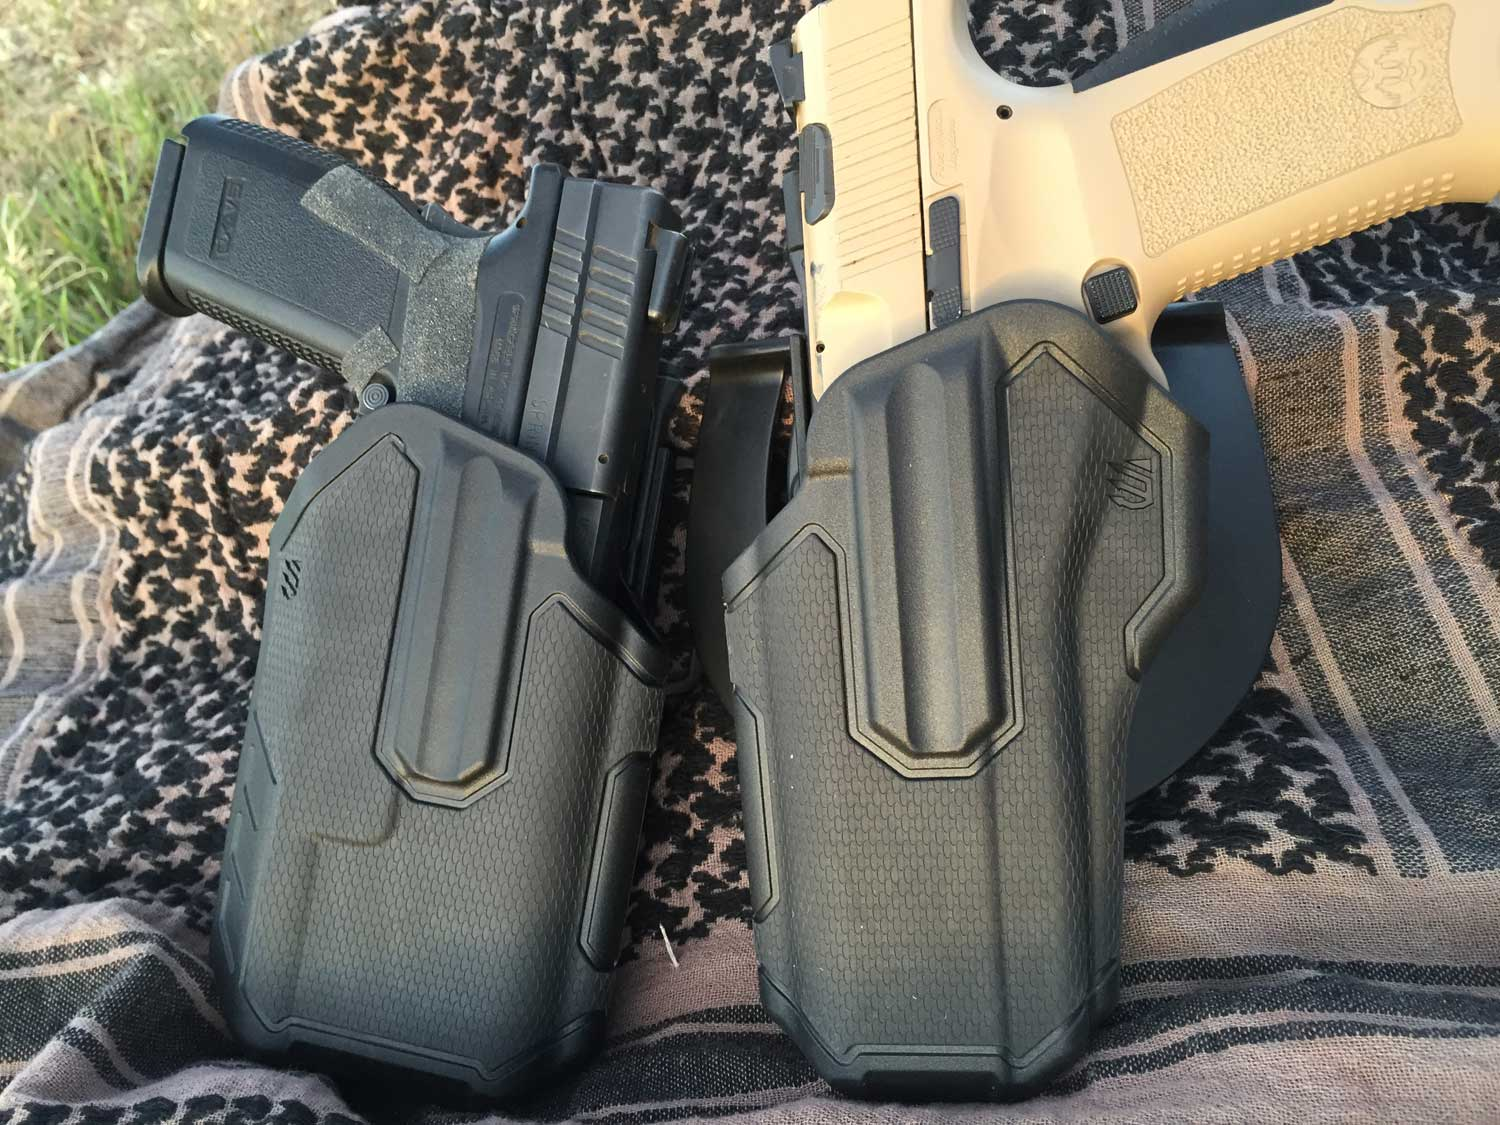 Light bearing (left) and regular Omnivore holsters